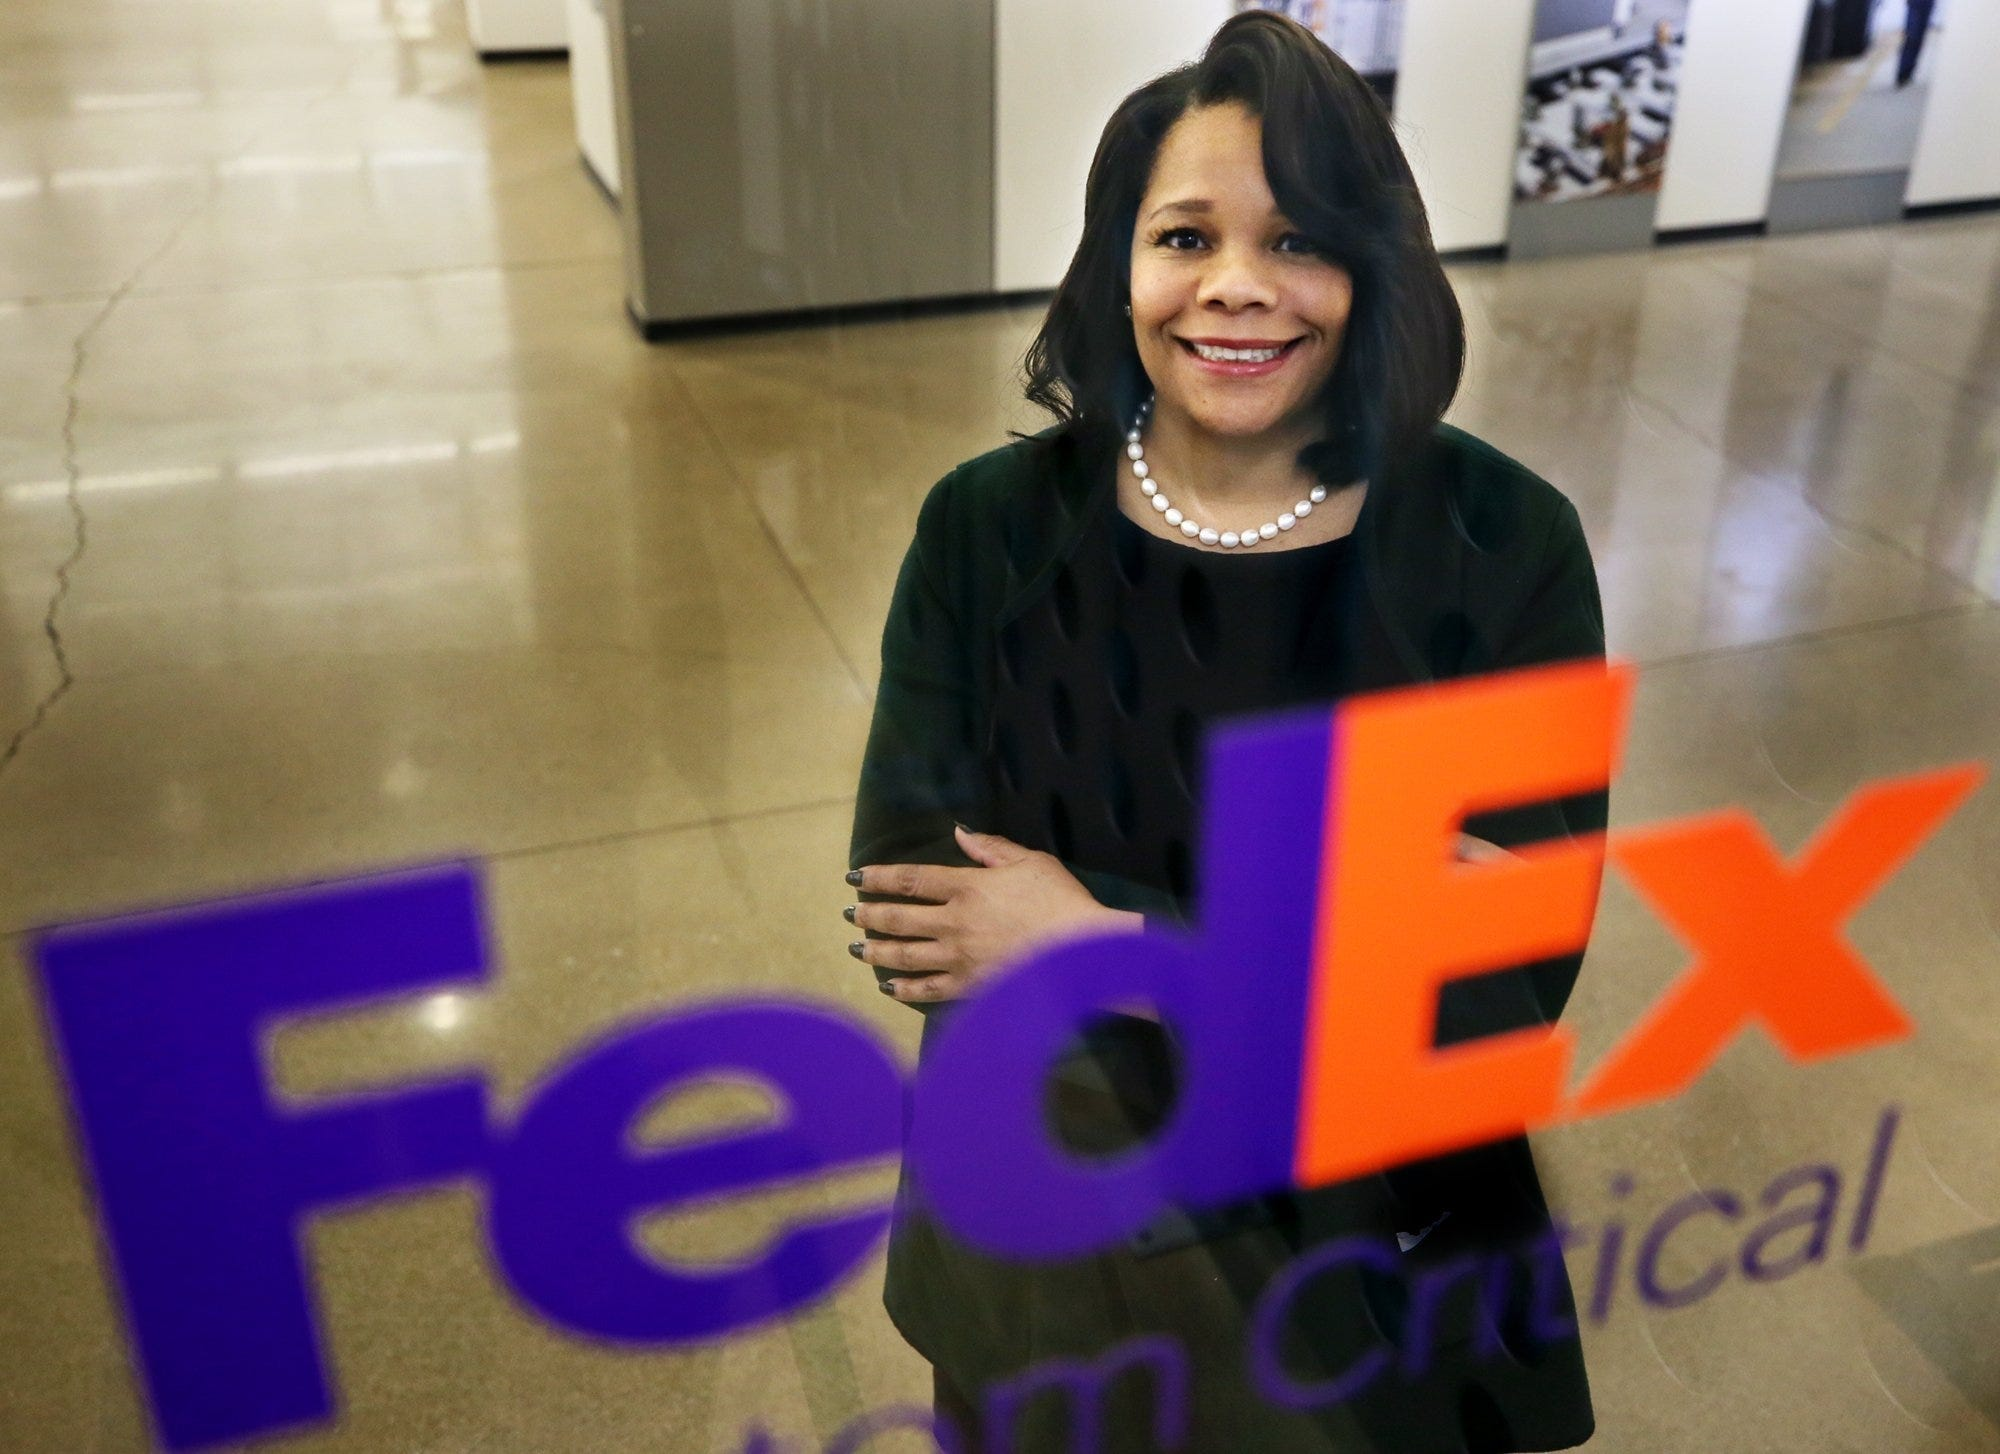 Ramona Hood a FedEx receptionist who became a CEO standing confidently with a successful smile